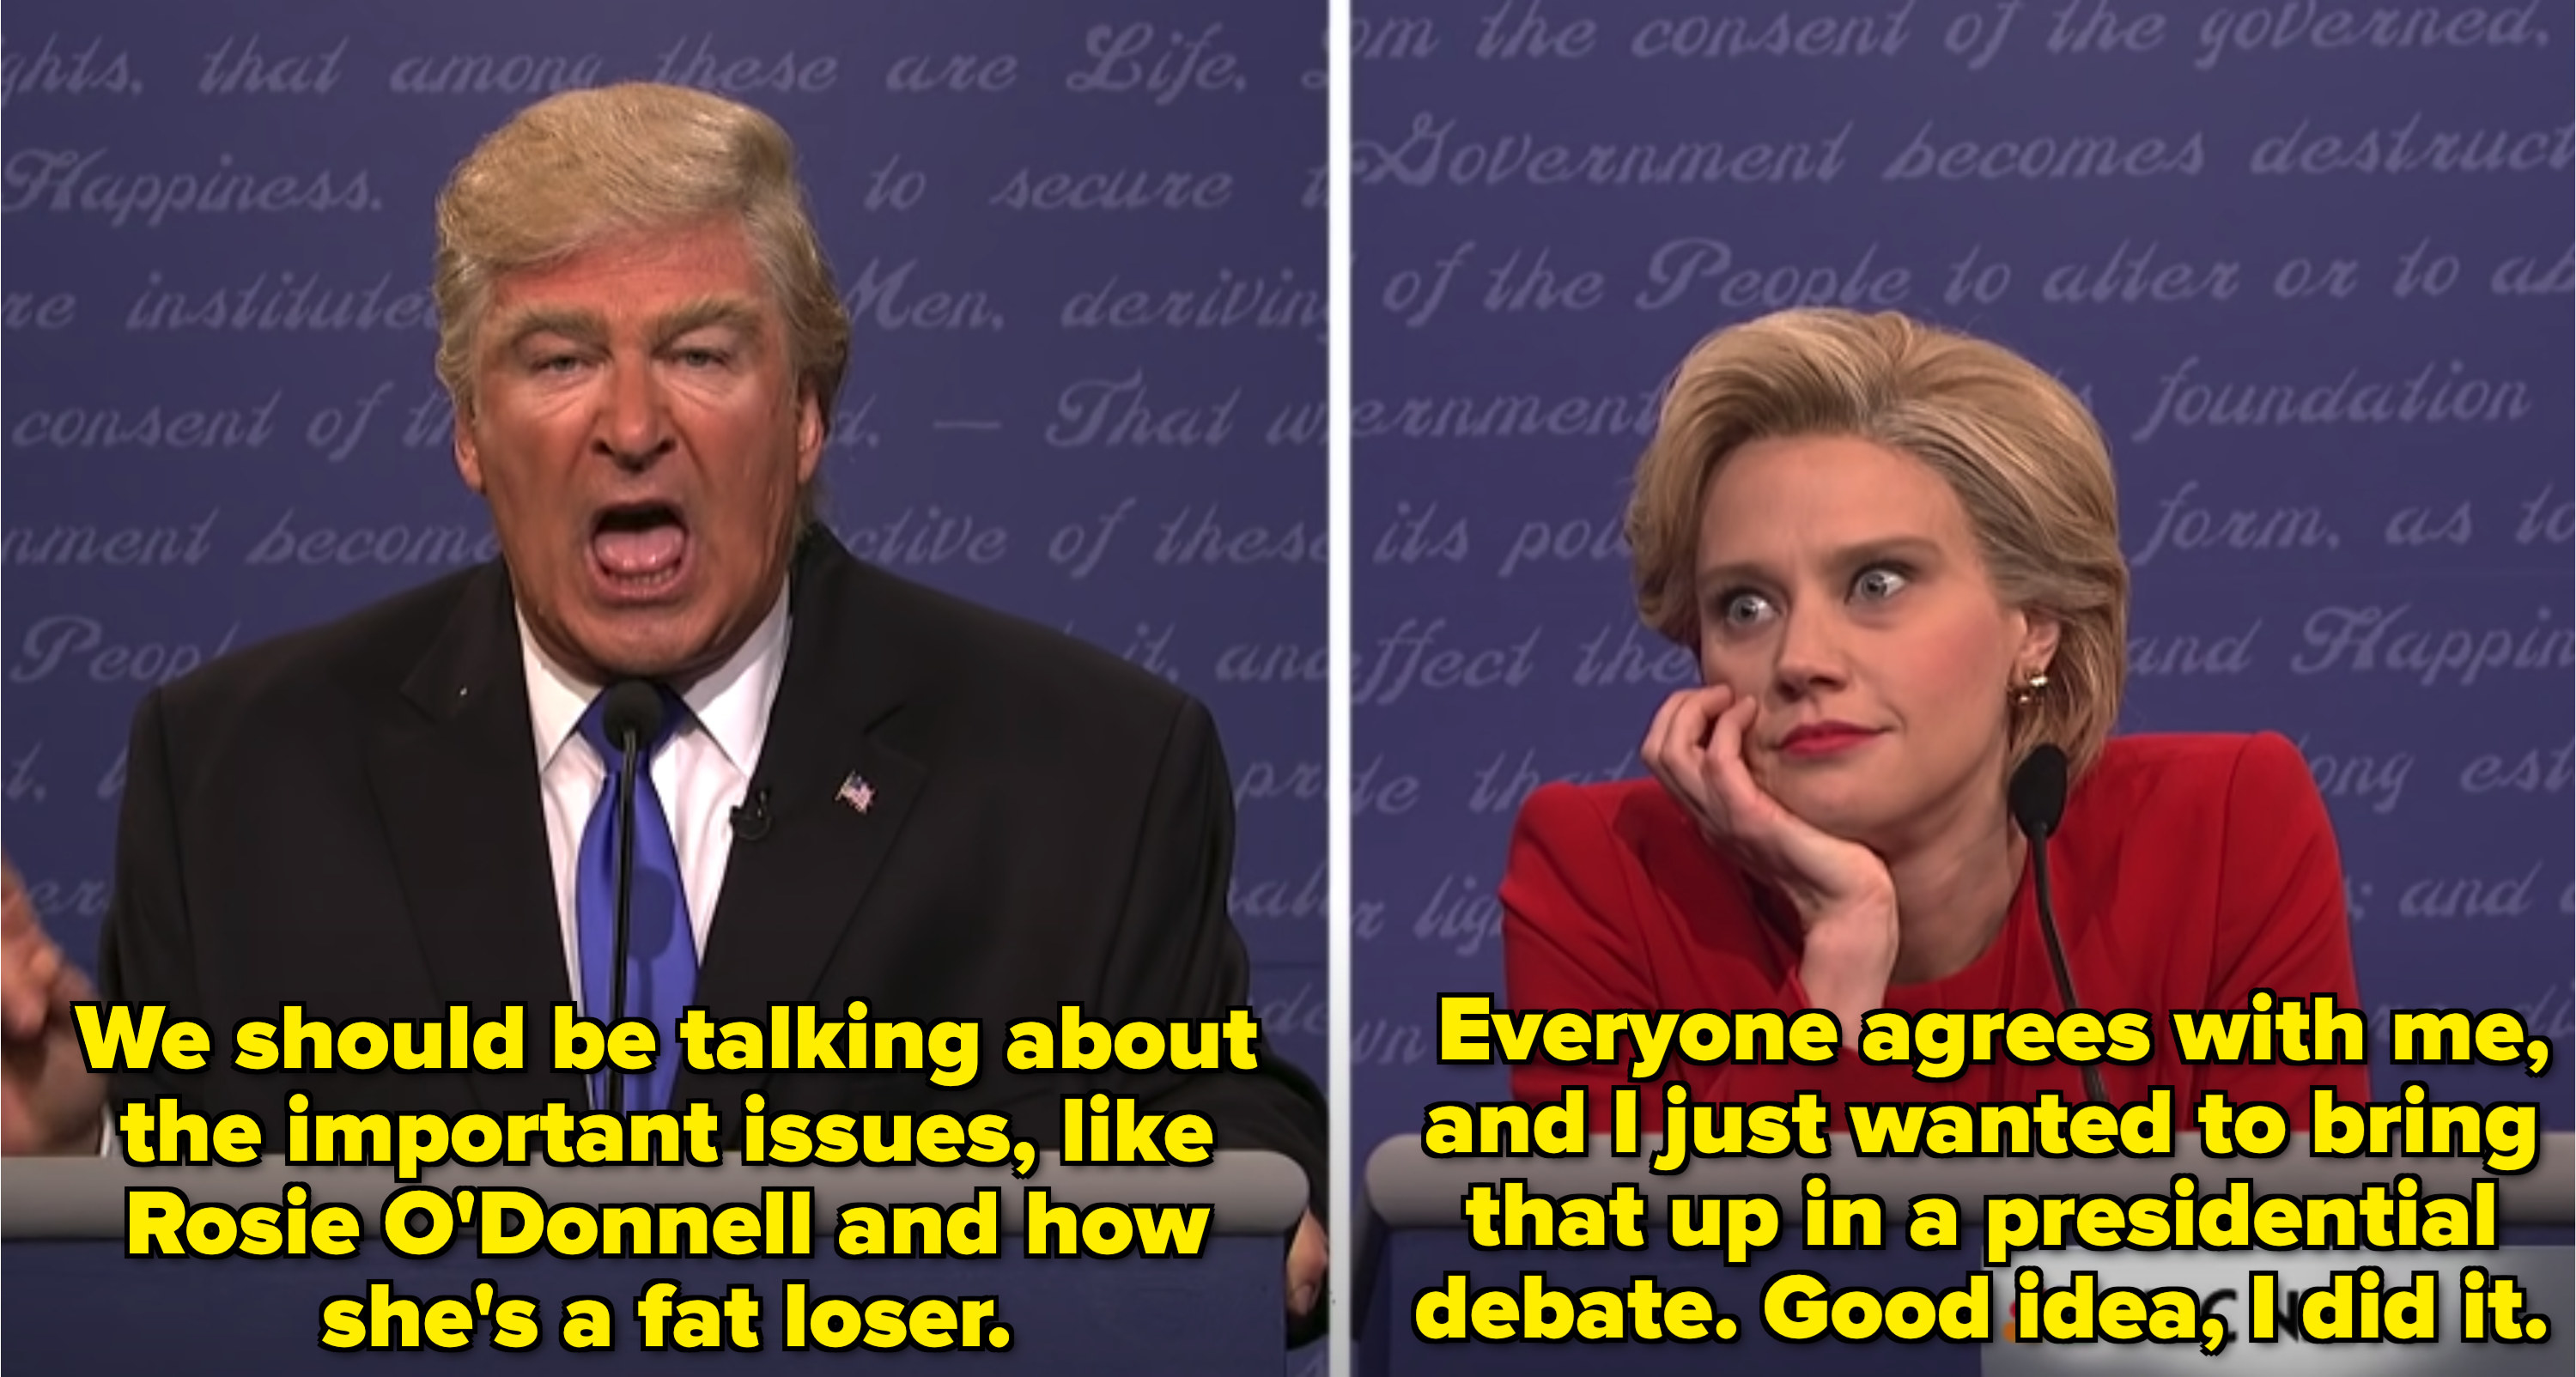 Alec Baldwin as Donald Trump insulting Rosie O'Donnell in a presidential debate while Kate McKinnon as Hillary Clinton reacts in shock